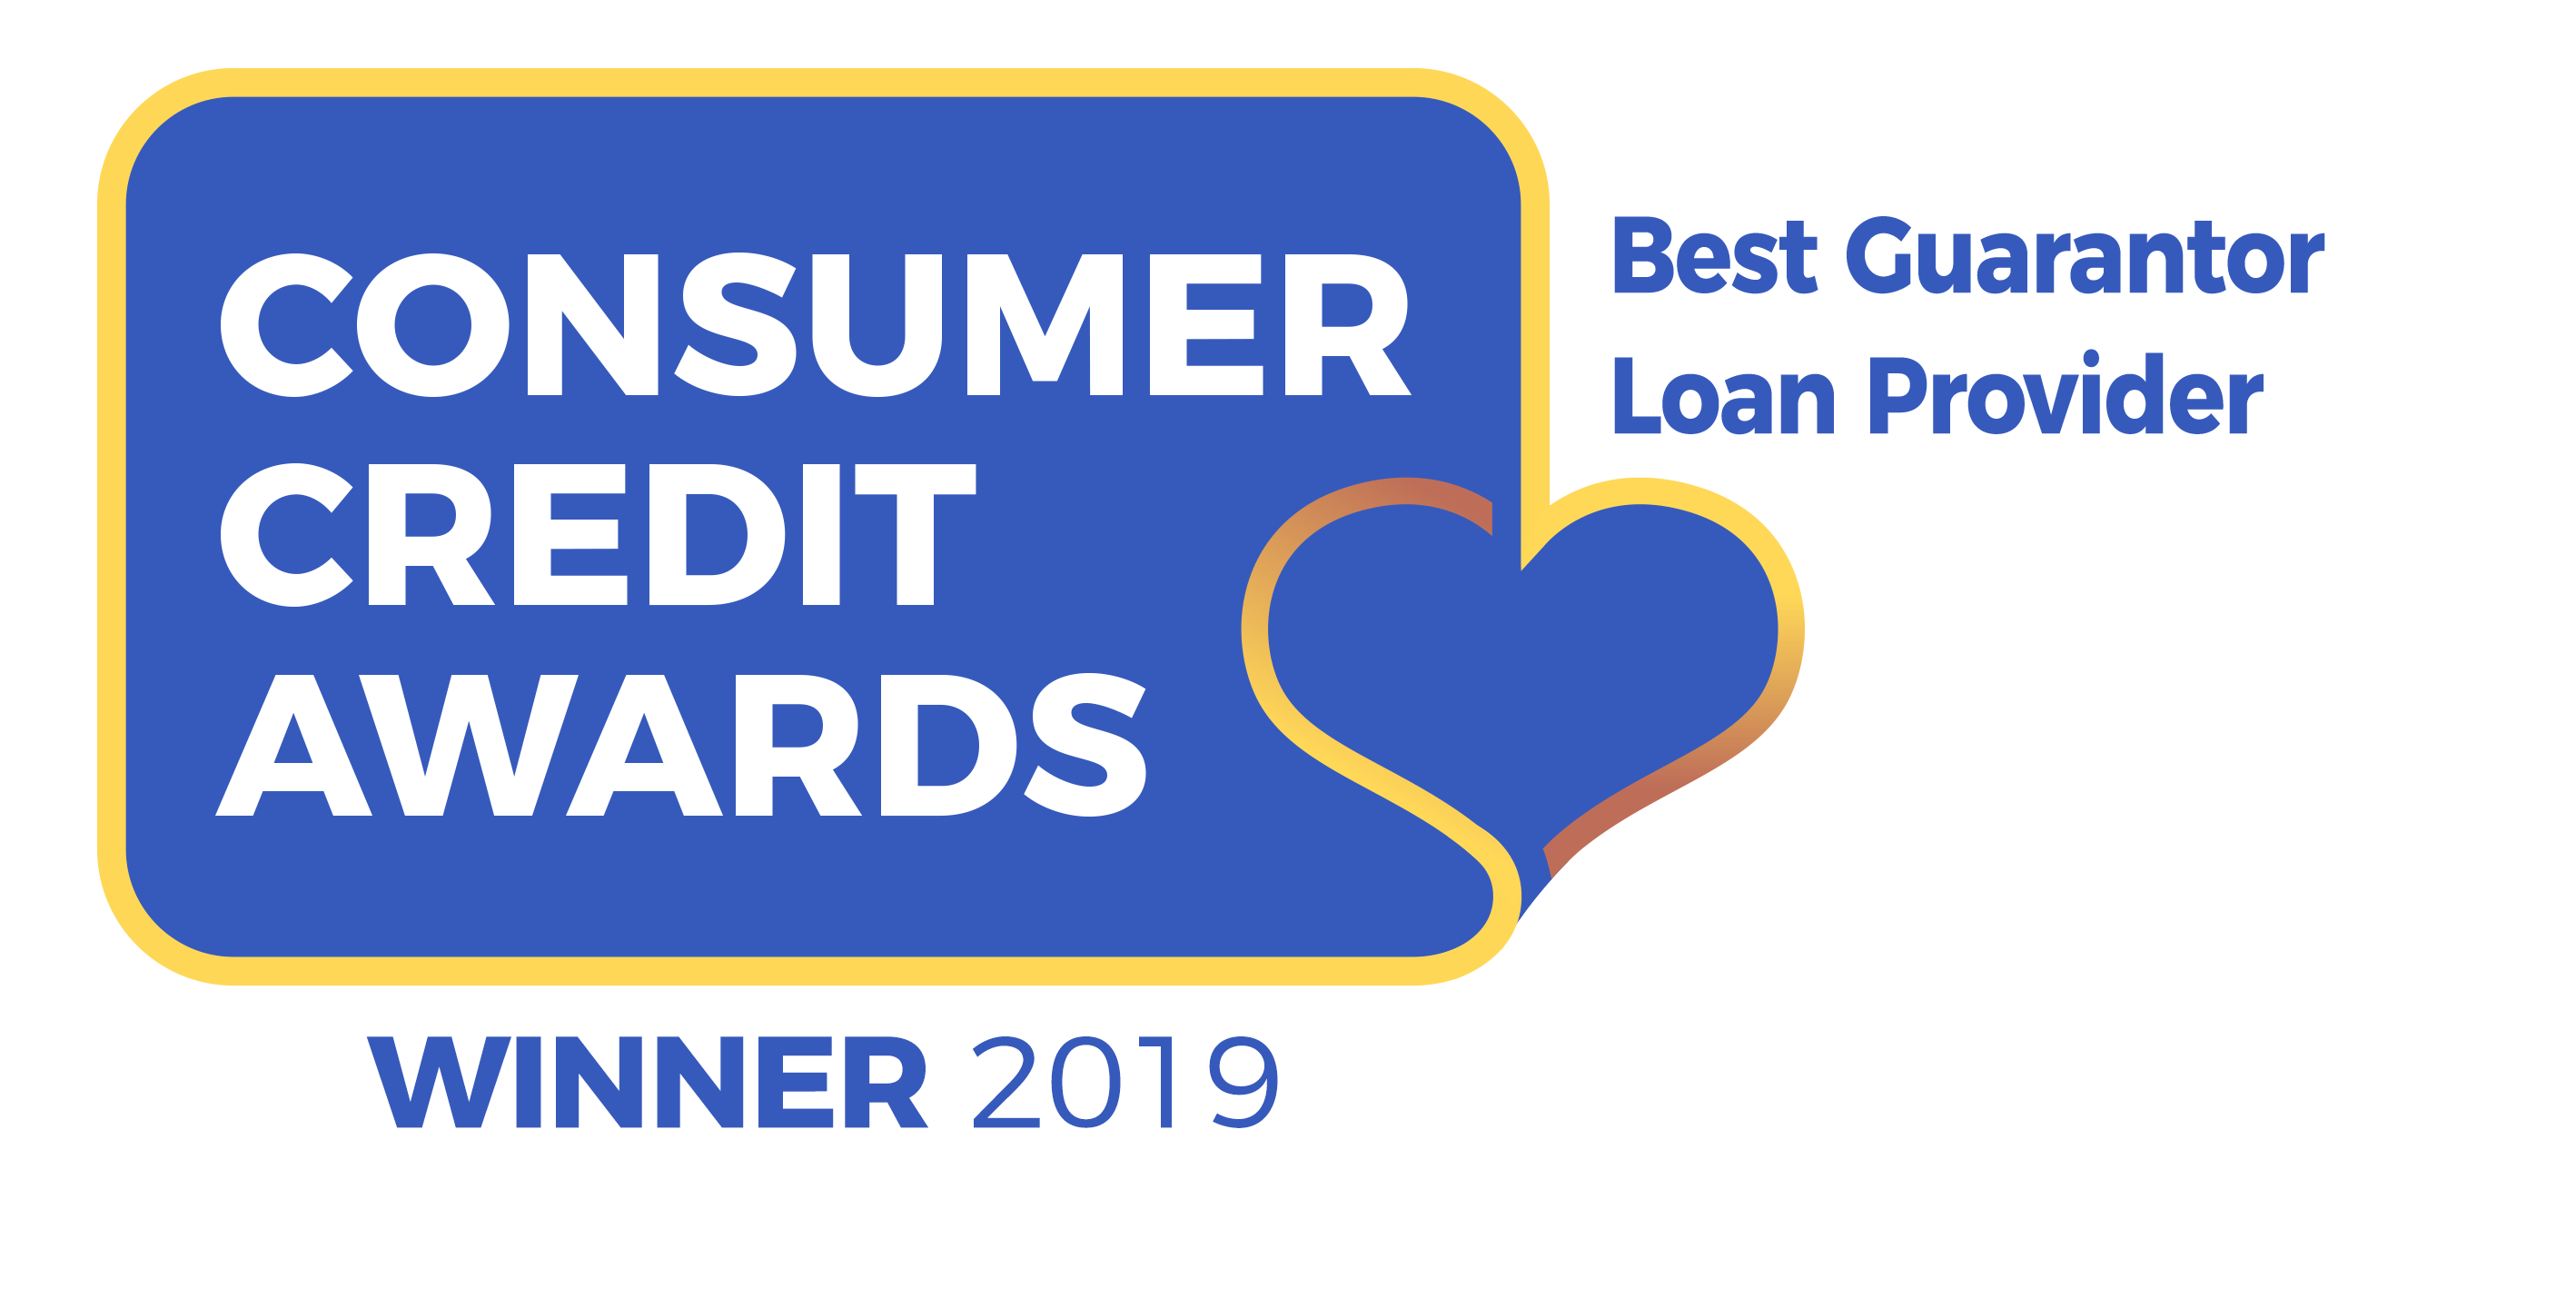 Consumer Credit Award - Best Guarantor Loan Provider 2019